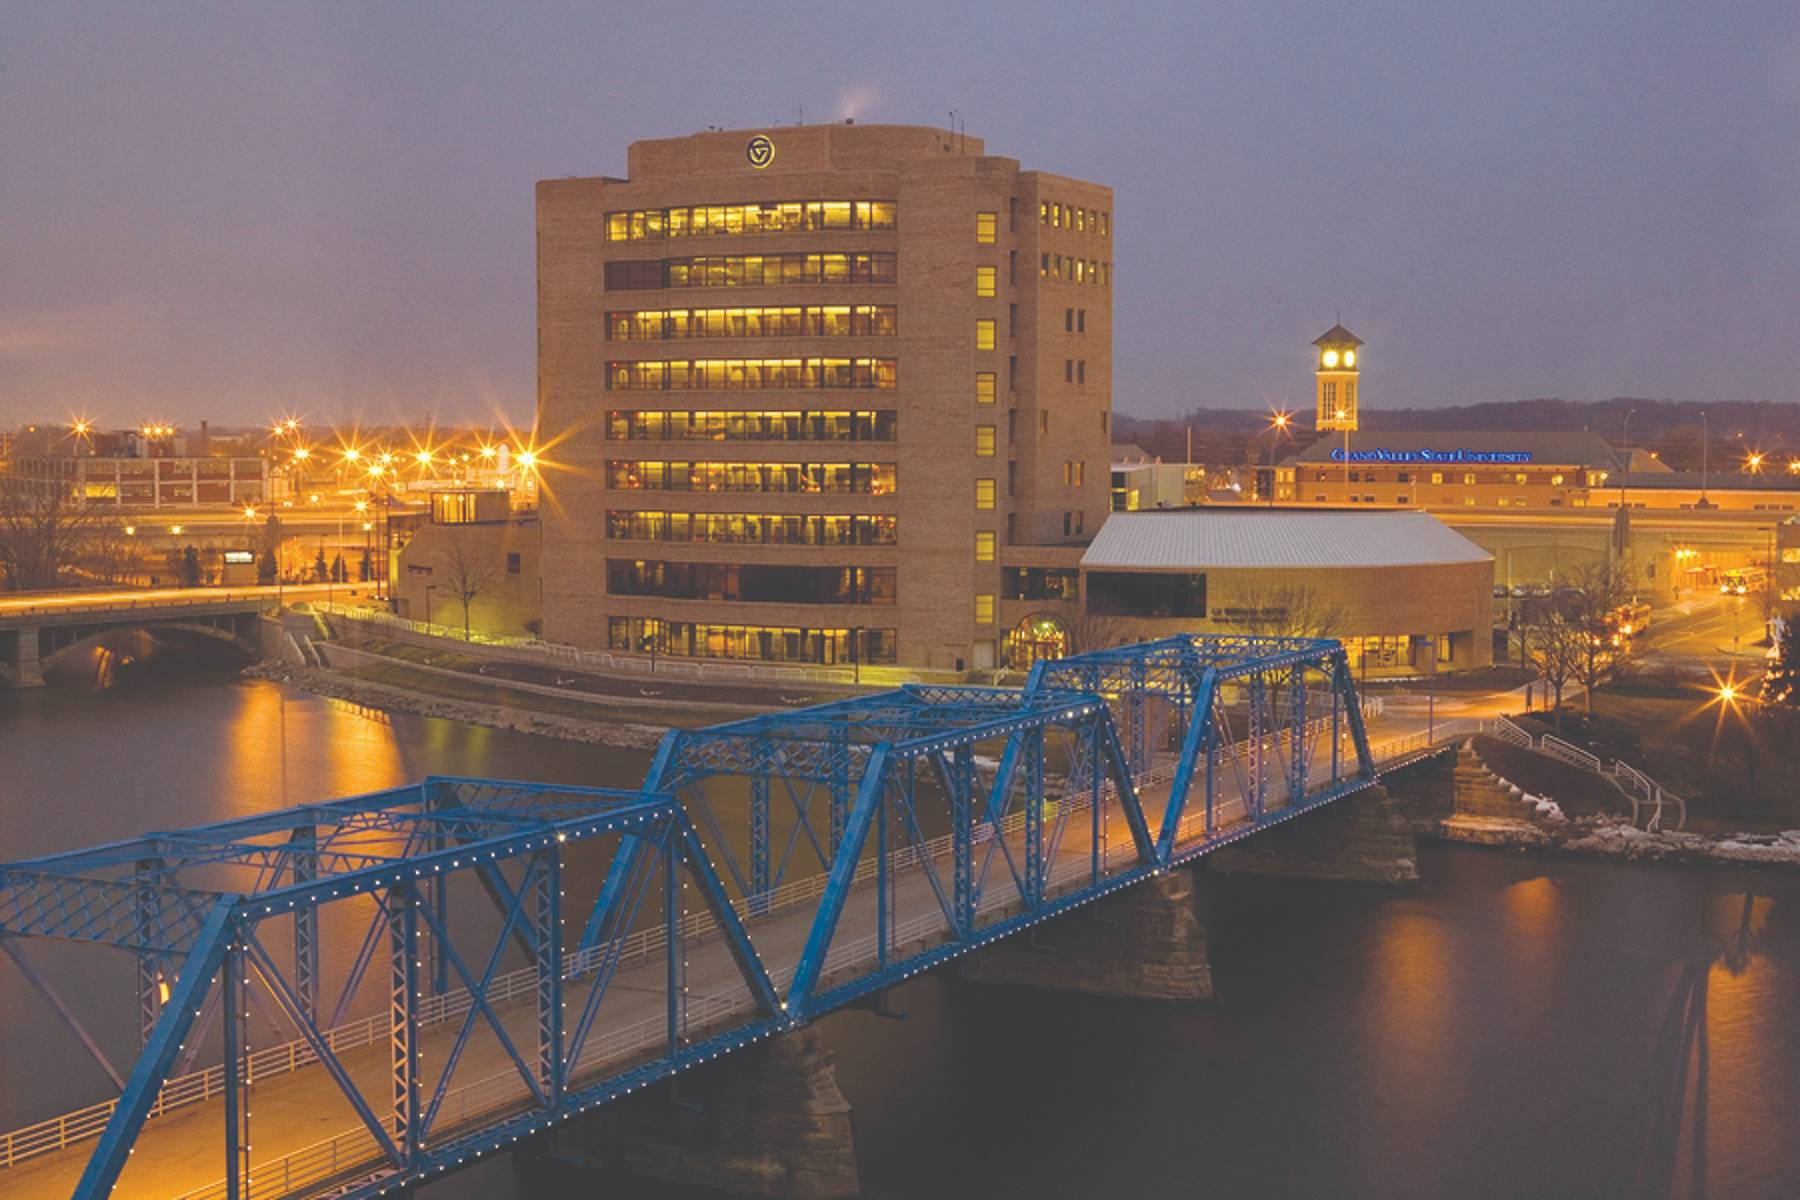 Exterior view of the L.V. Eberhard Center and the Blue Bridge